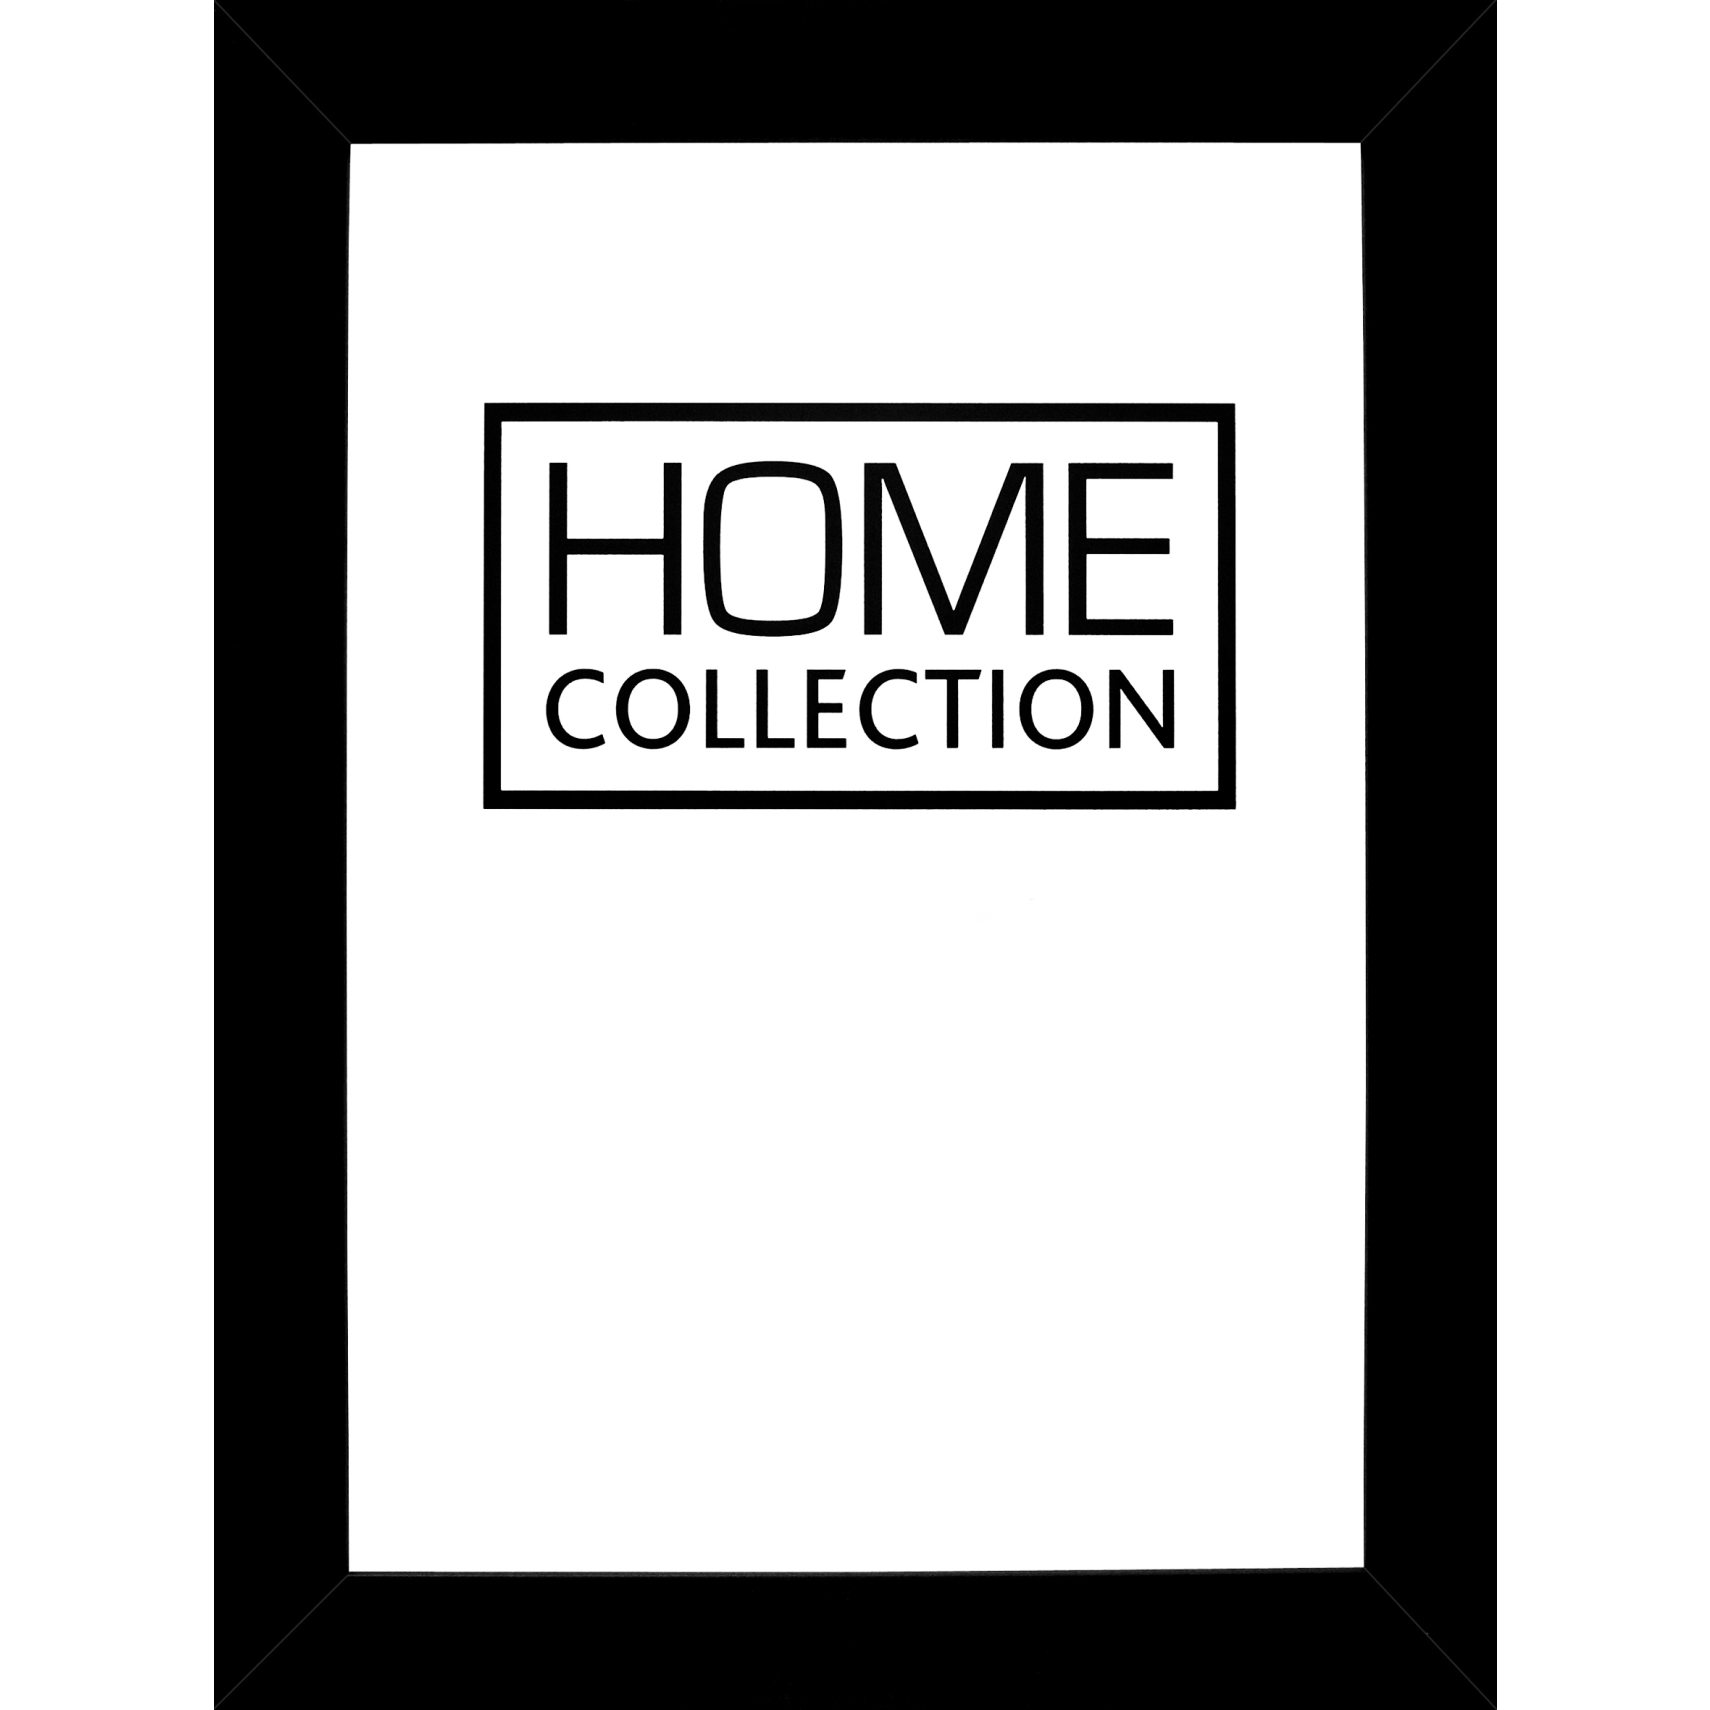 HOME COLLECTION Ram 21 x 30 x 1 cm - Svart träram